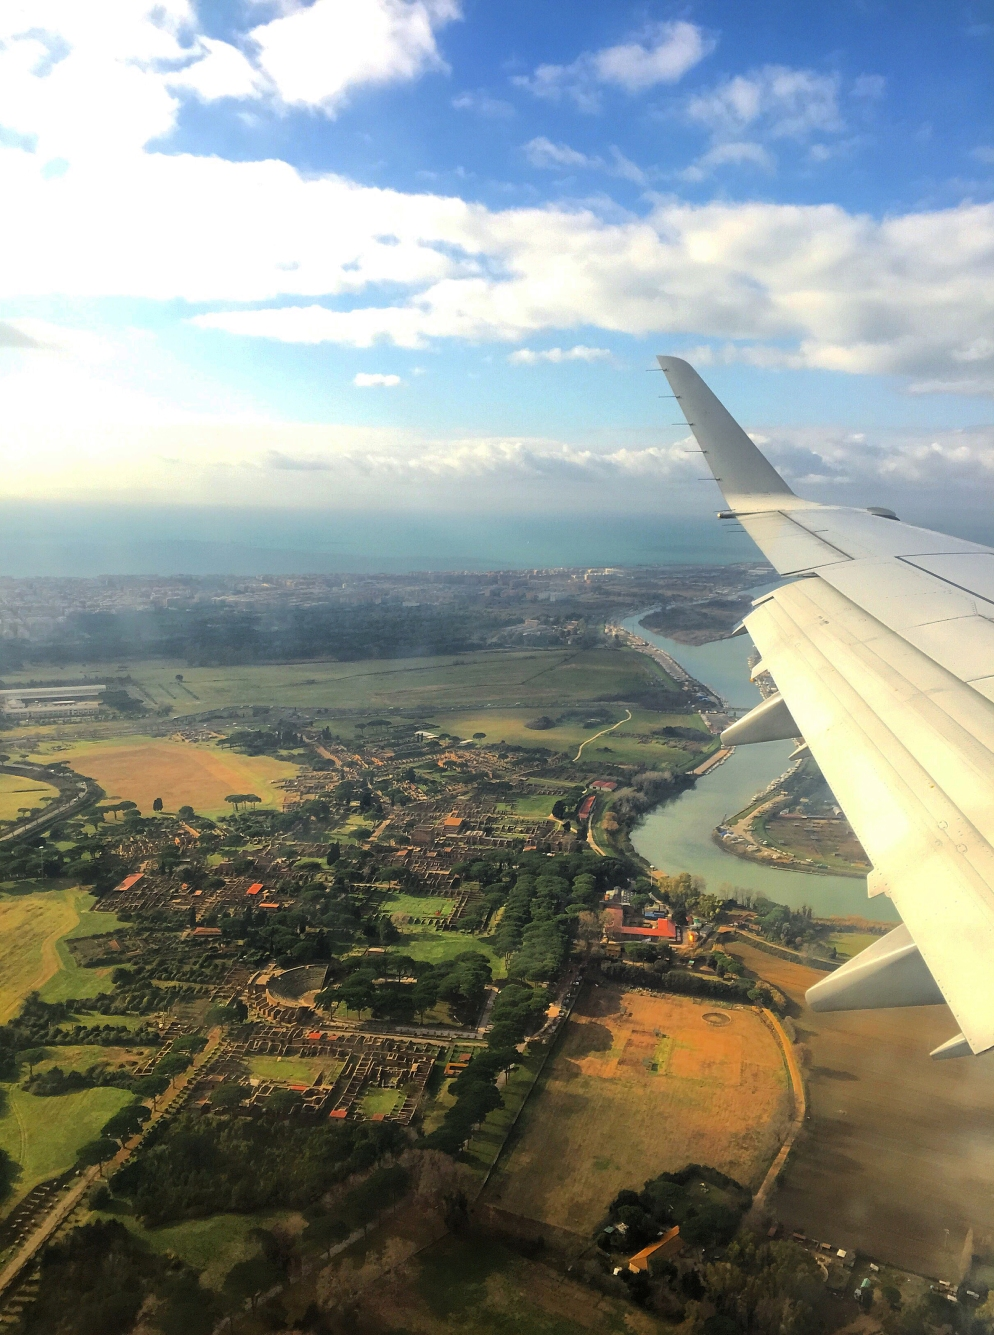 Flying into Fiumicino! Absolutely blown away by my flight from Dusseldorf, Germany to the Aeroporti di Roma